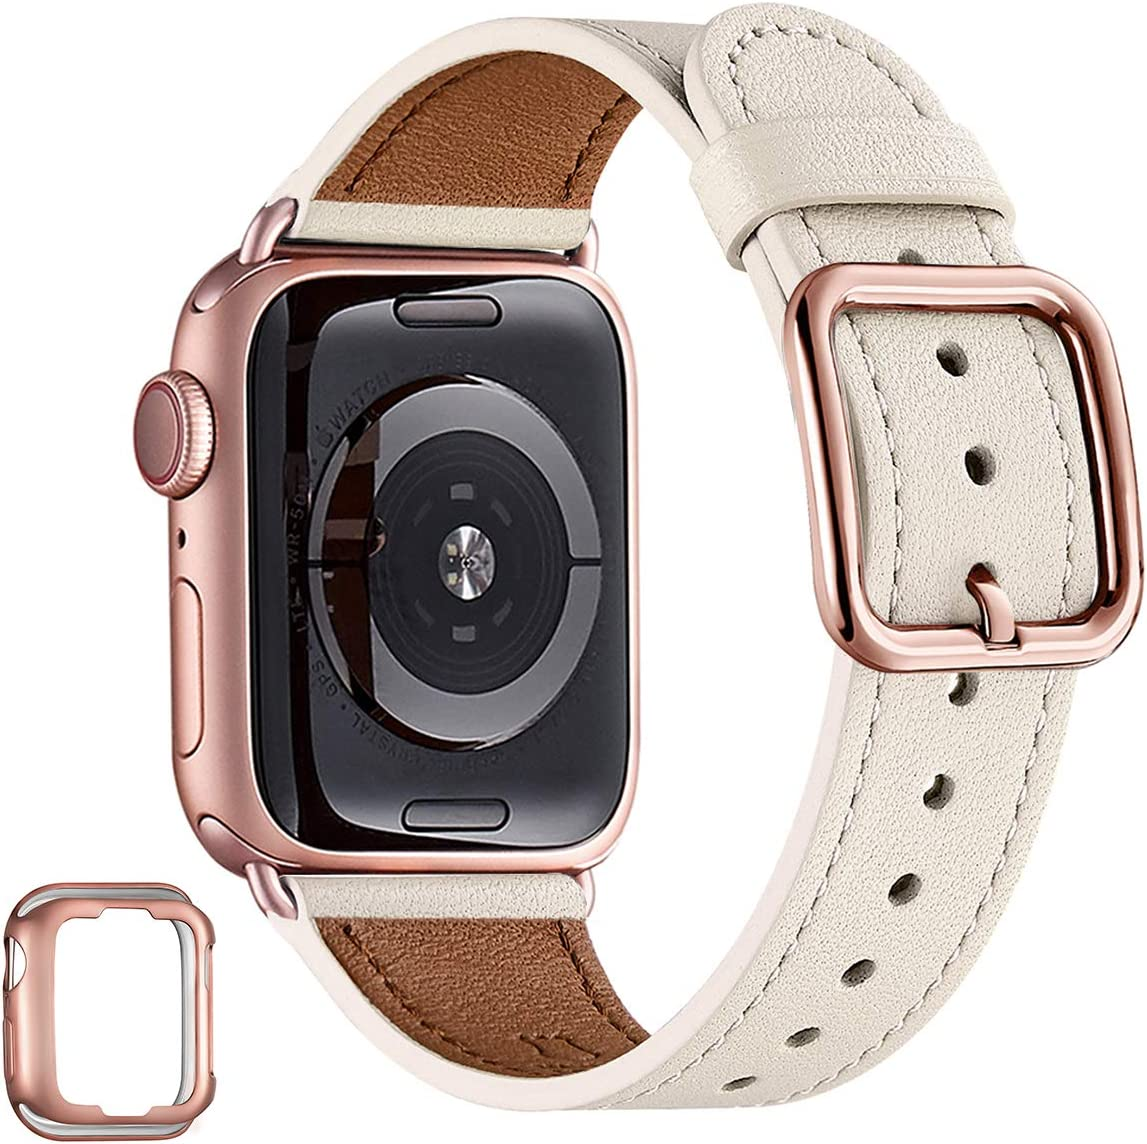 MNBVCXZ Compatible with Apple Watch Band 38mm 40mm 42mm 44mm Women Men Girls Boys Genuine Leather Replacement Strap for iWatch Series 6 5 4 3 2 1 iWatch SE (Ivory white/Rose gold, 38mm 40mm)